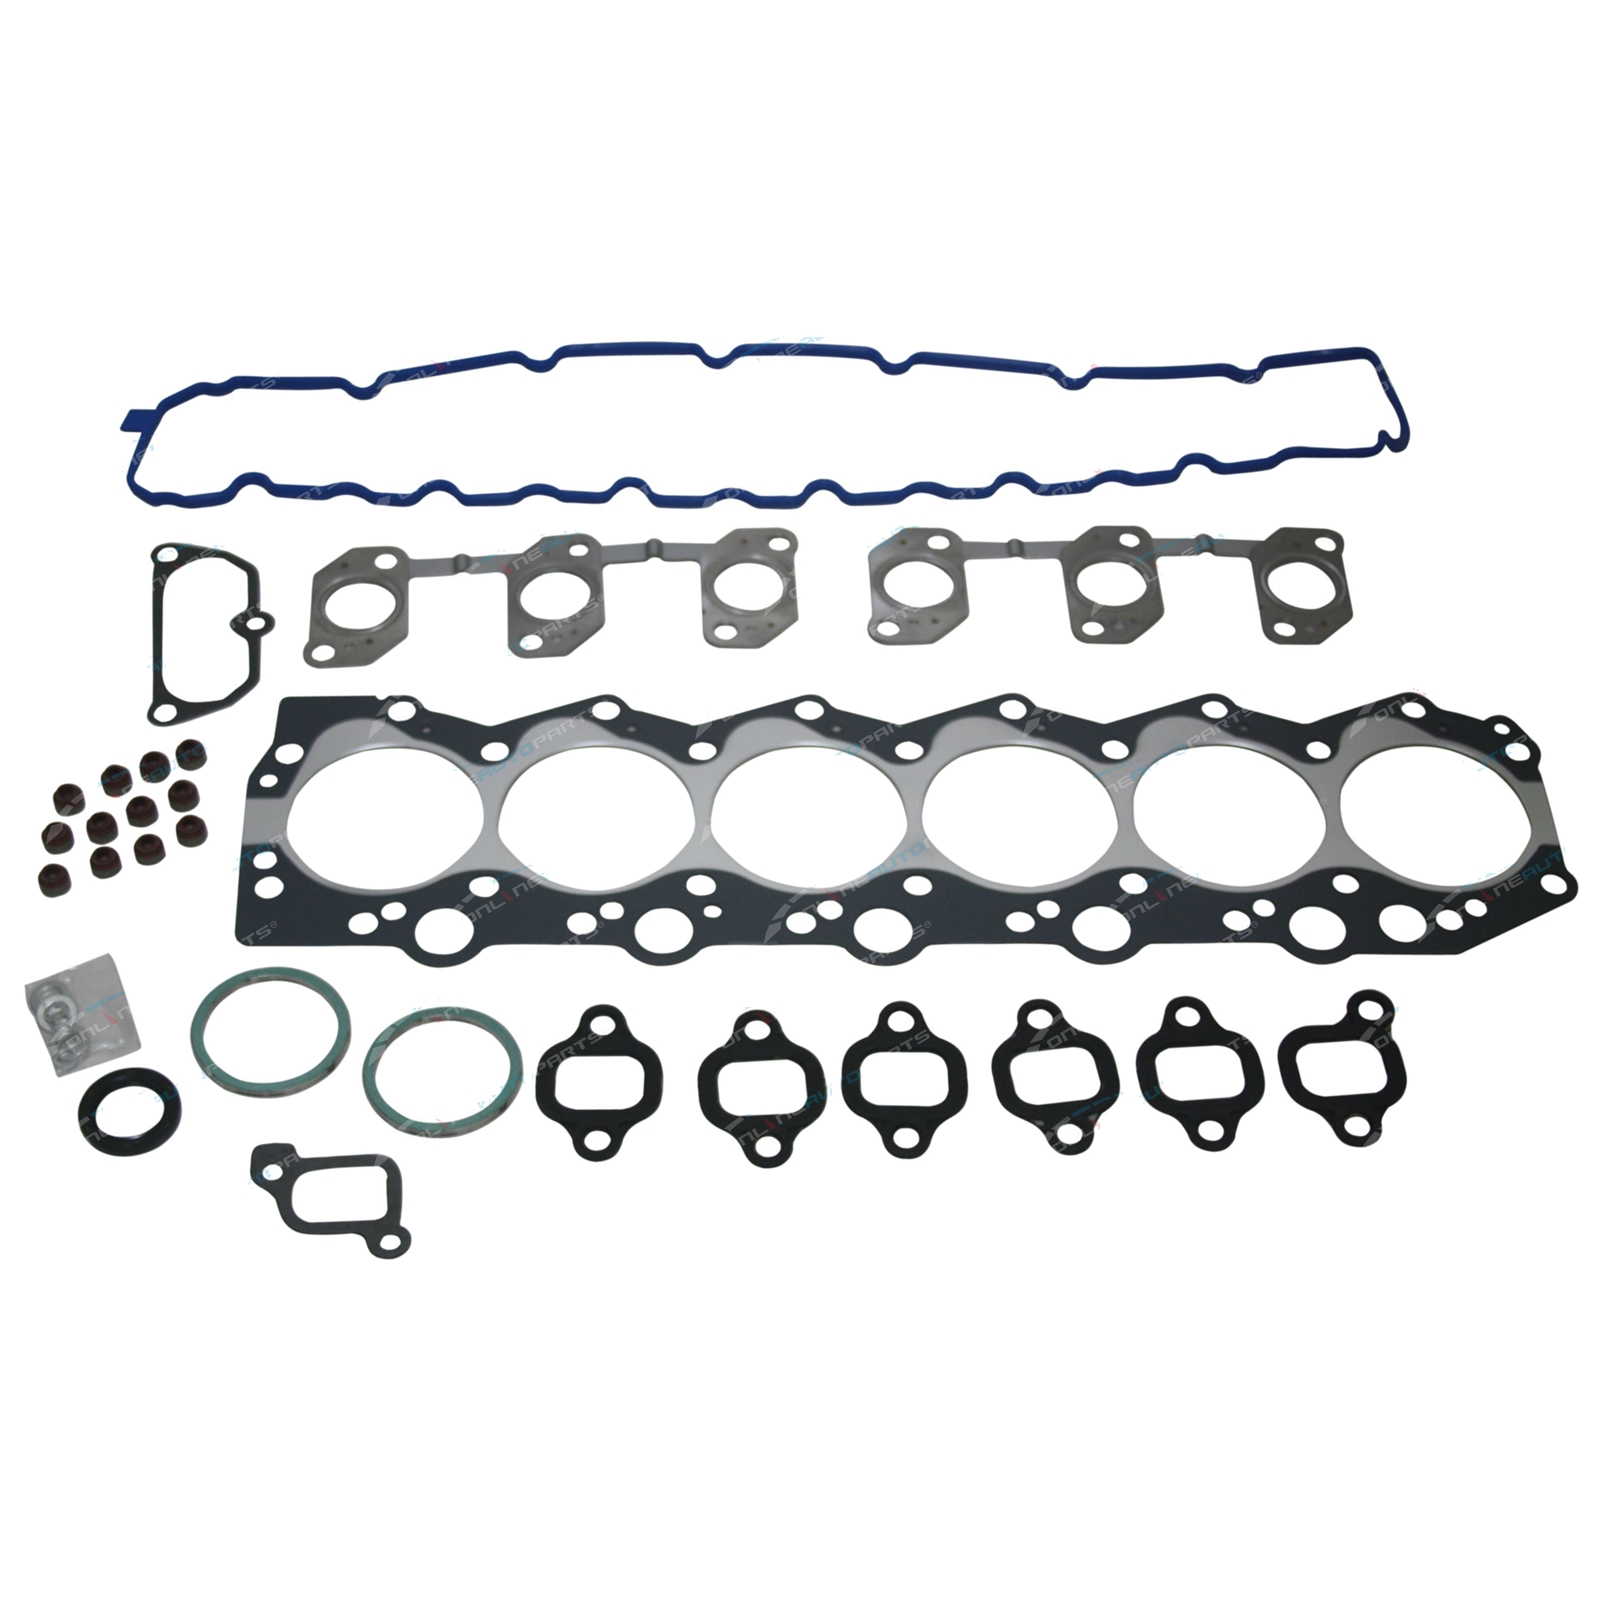 Engine VRS Set inc Cylidner Head Gasket suits Toyota HDJ80 4 2L Landcruiser  1HDT Turbo Diesel 80 Series 1990 to 1994